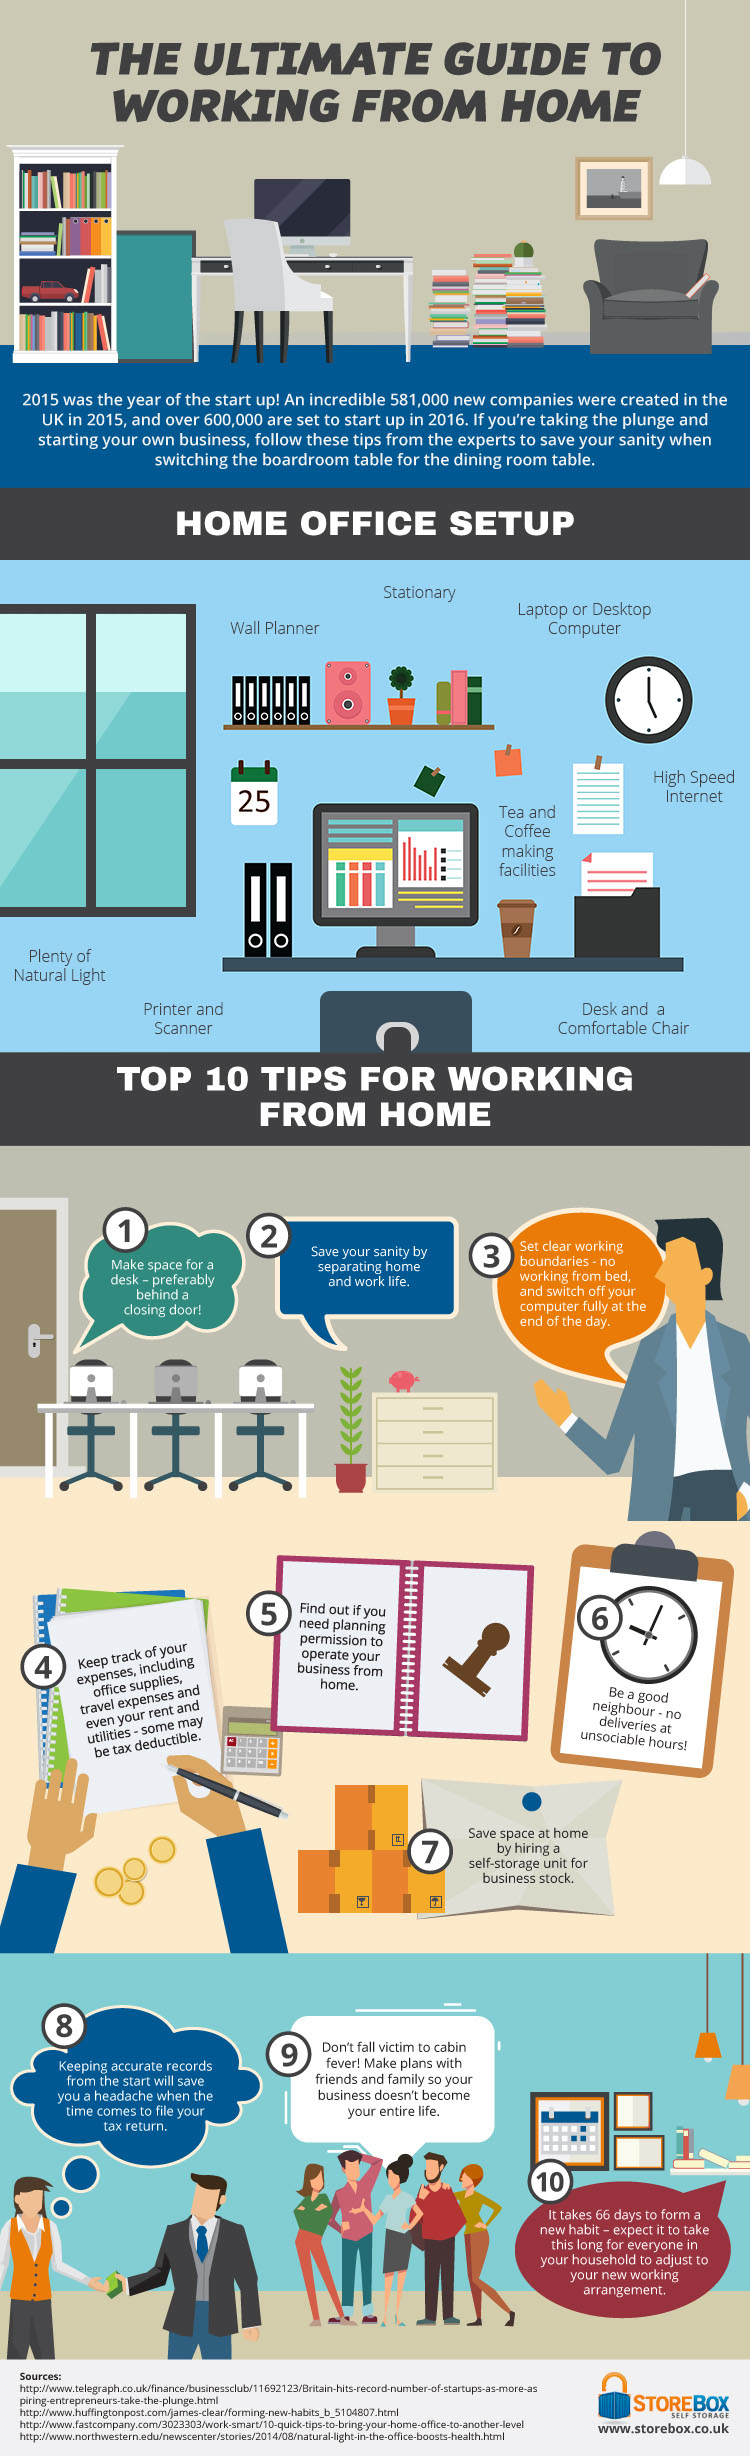 TheUltimateGuideToWorkingFromHome_57178a1465166